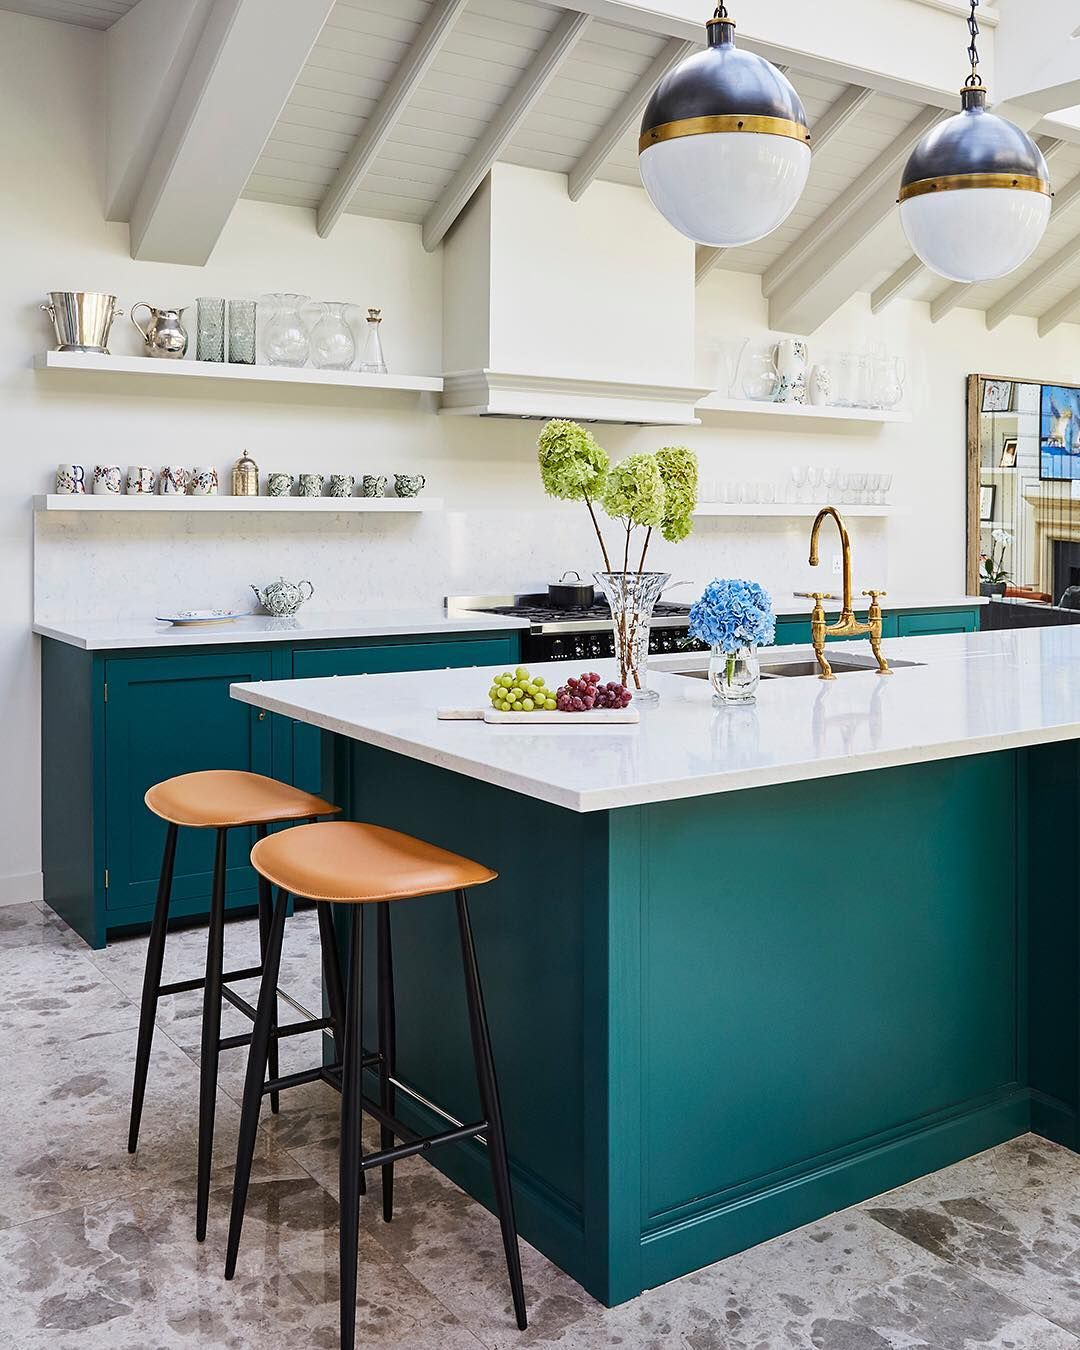 Made Com On Instagram Teal Taupe And More We Ve Got This Season S Ultimate Colour Power Couples Teal Kitchen Cabinets Teal Kitchen Custom Kitchen Cabinets